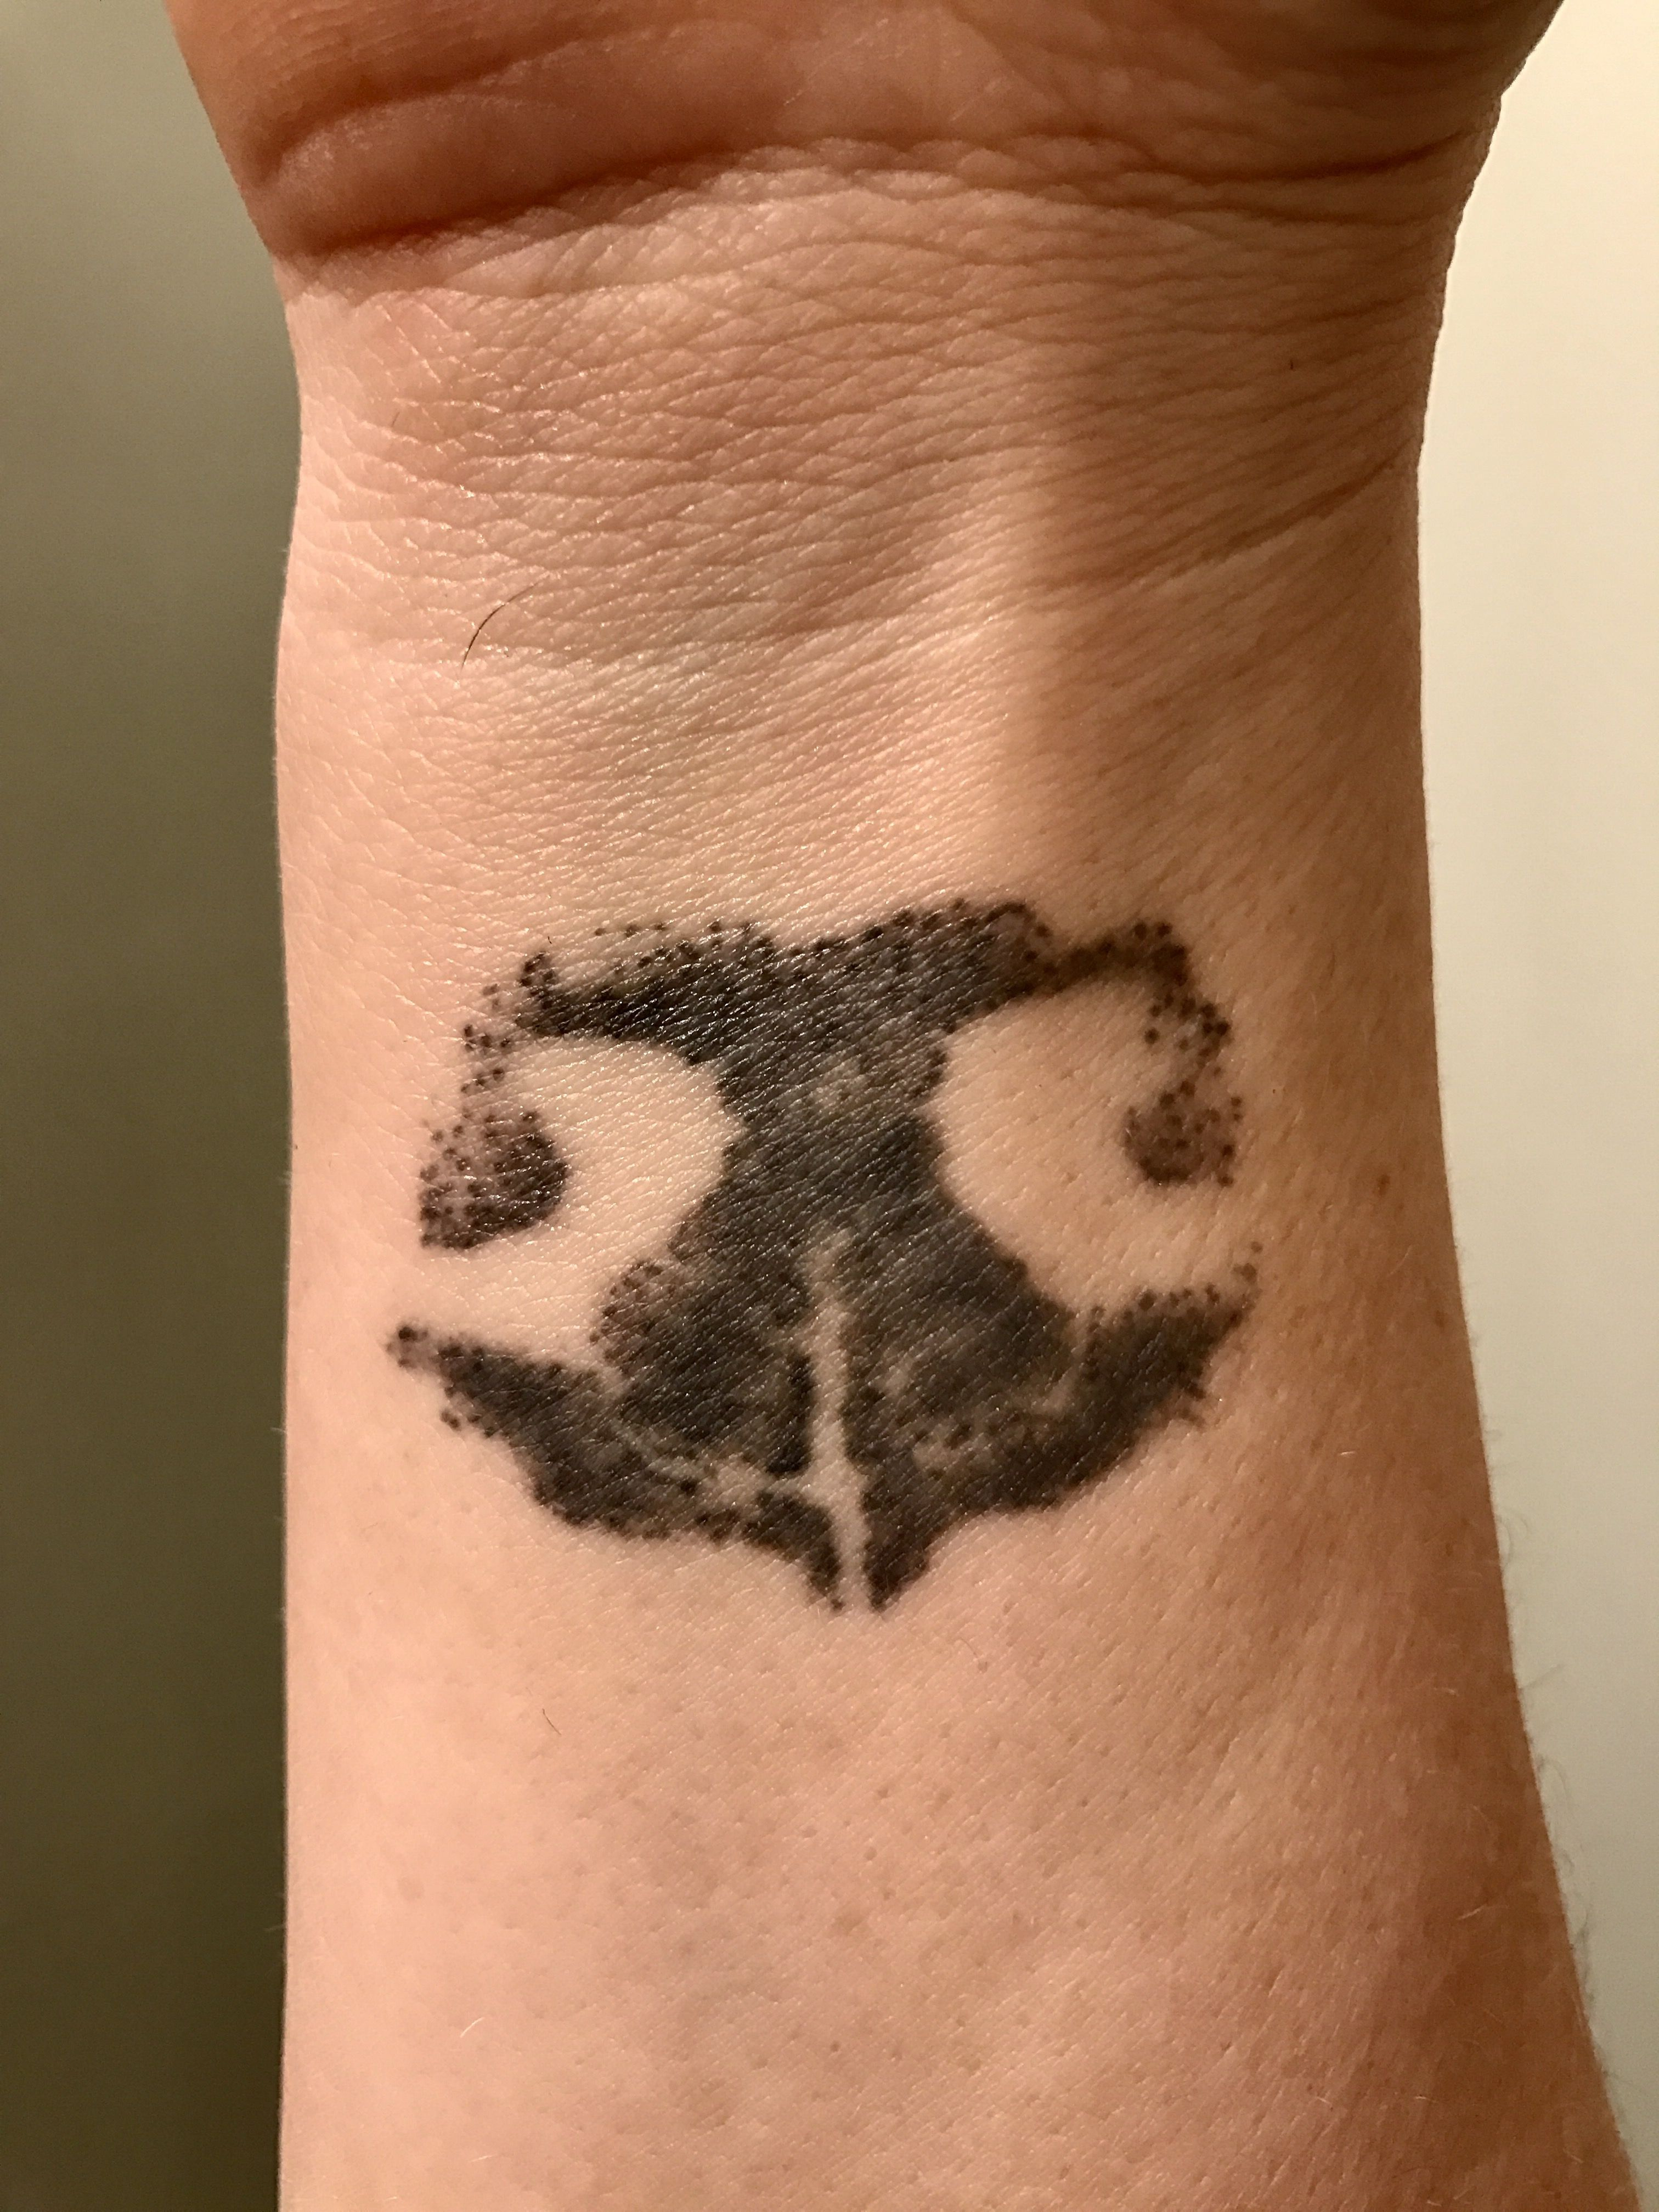 Blue Dog Paw Print Tattoo - Year of Clean Water